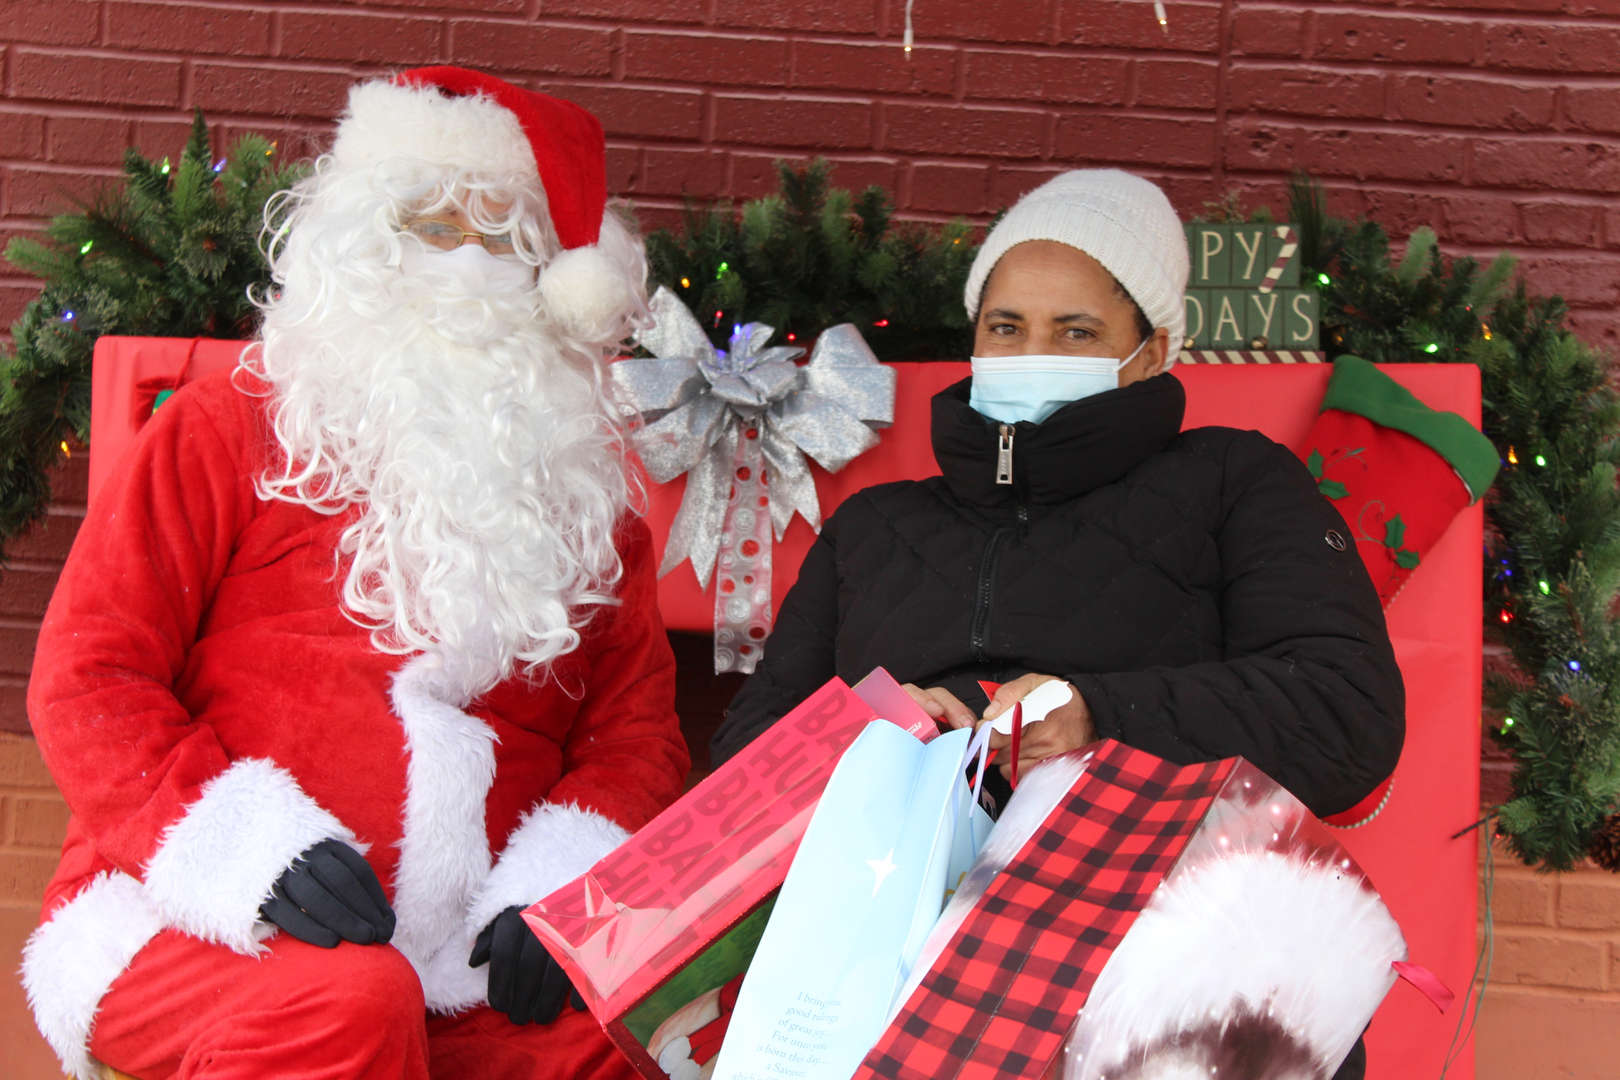 parent taking picture with Santa holding a red and black gift bag